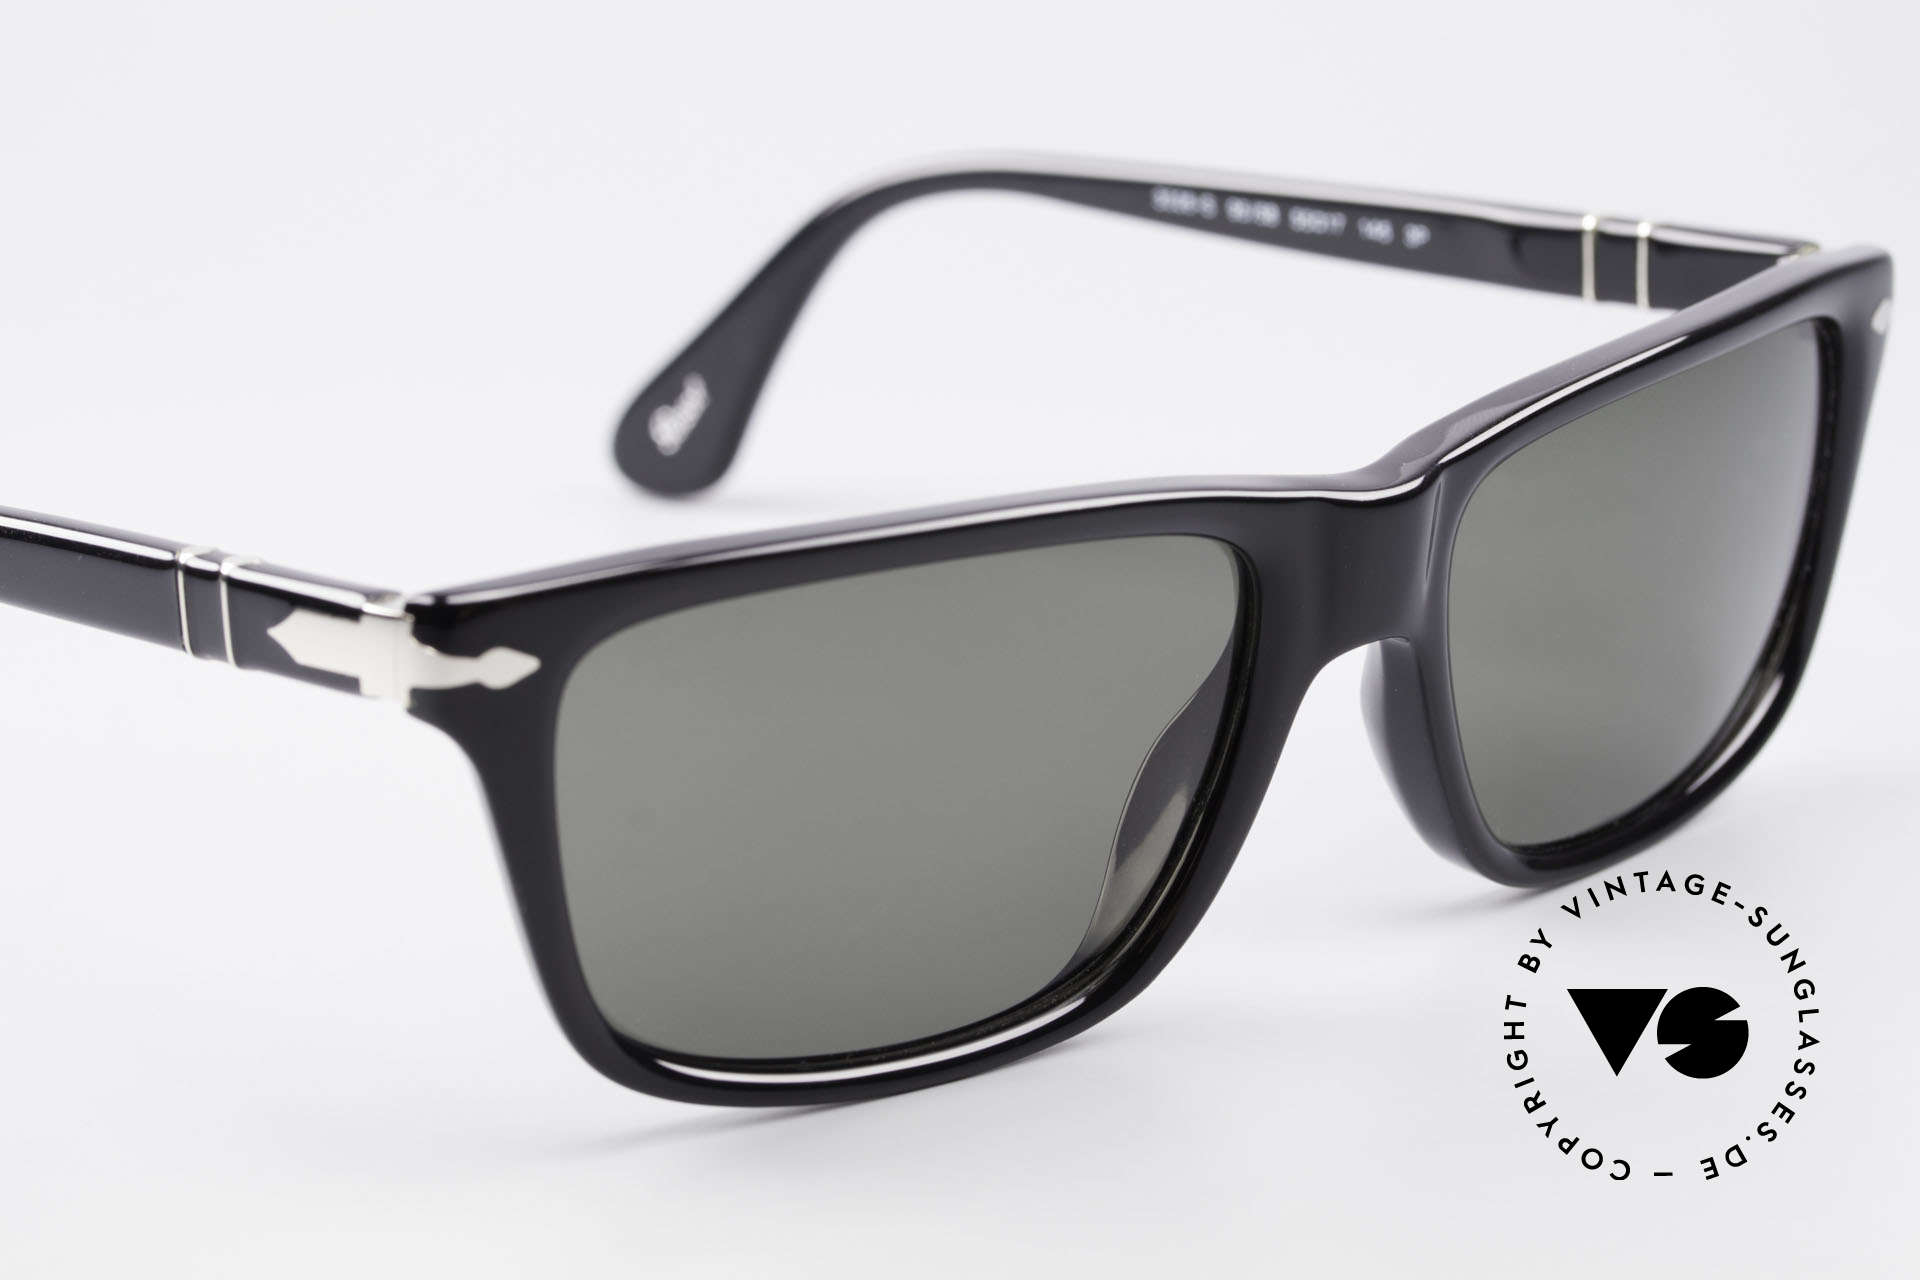 Persol 3026 Classic Sunglasses Polarized, reissue of the old vintage Persol RATTI models, Made for Men and Women